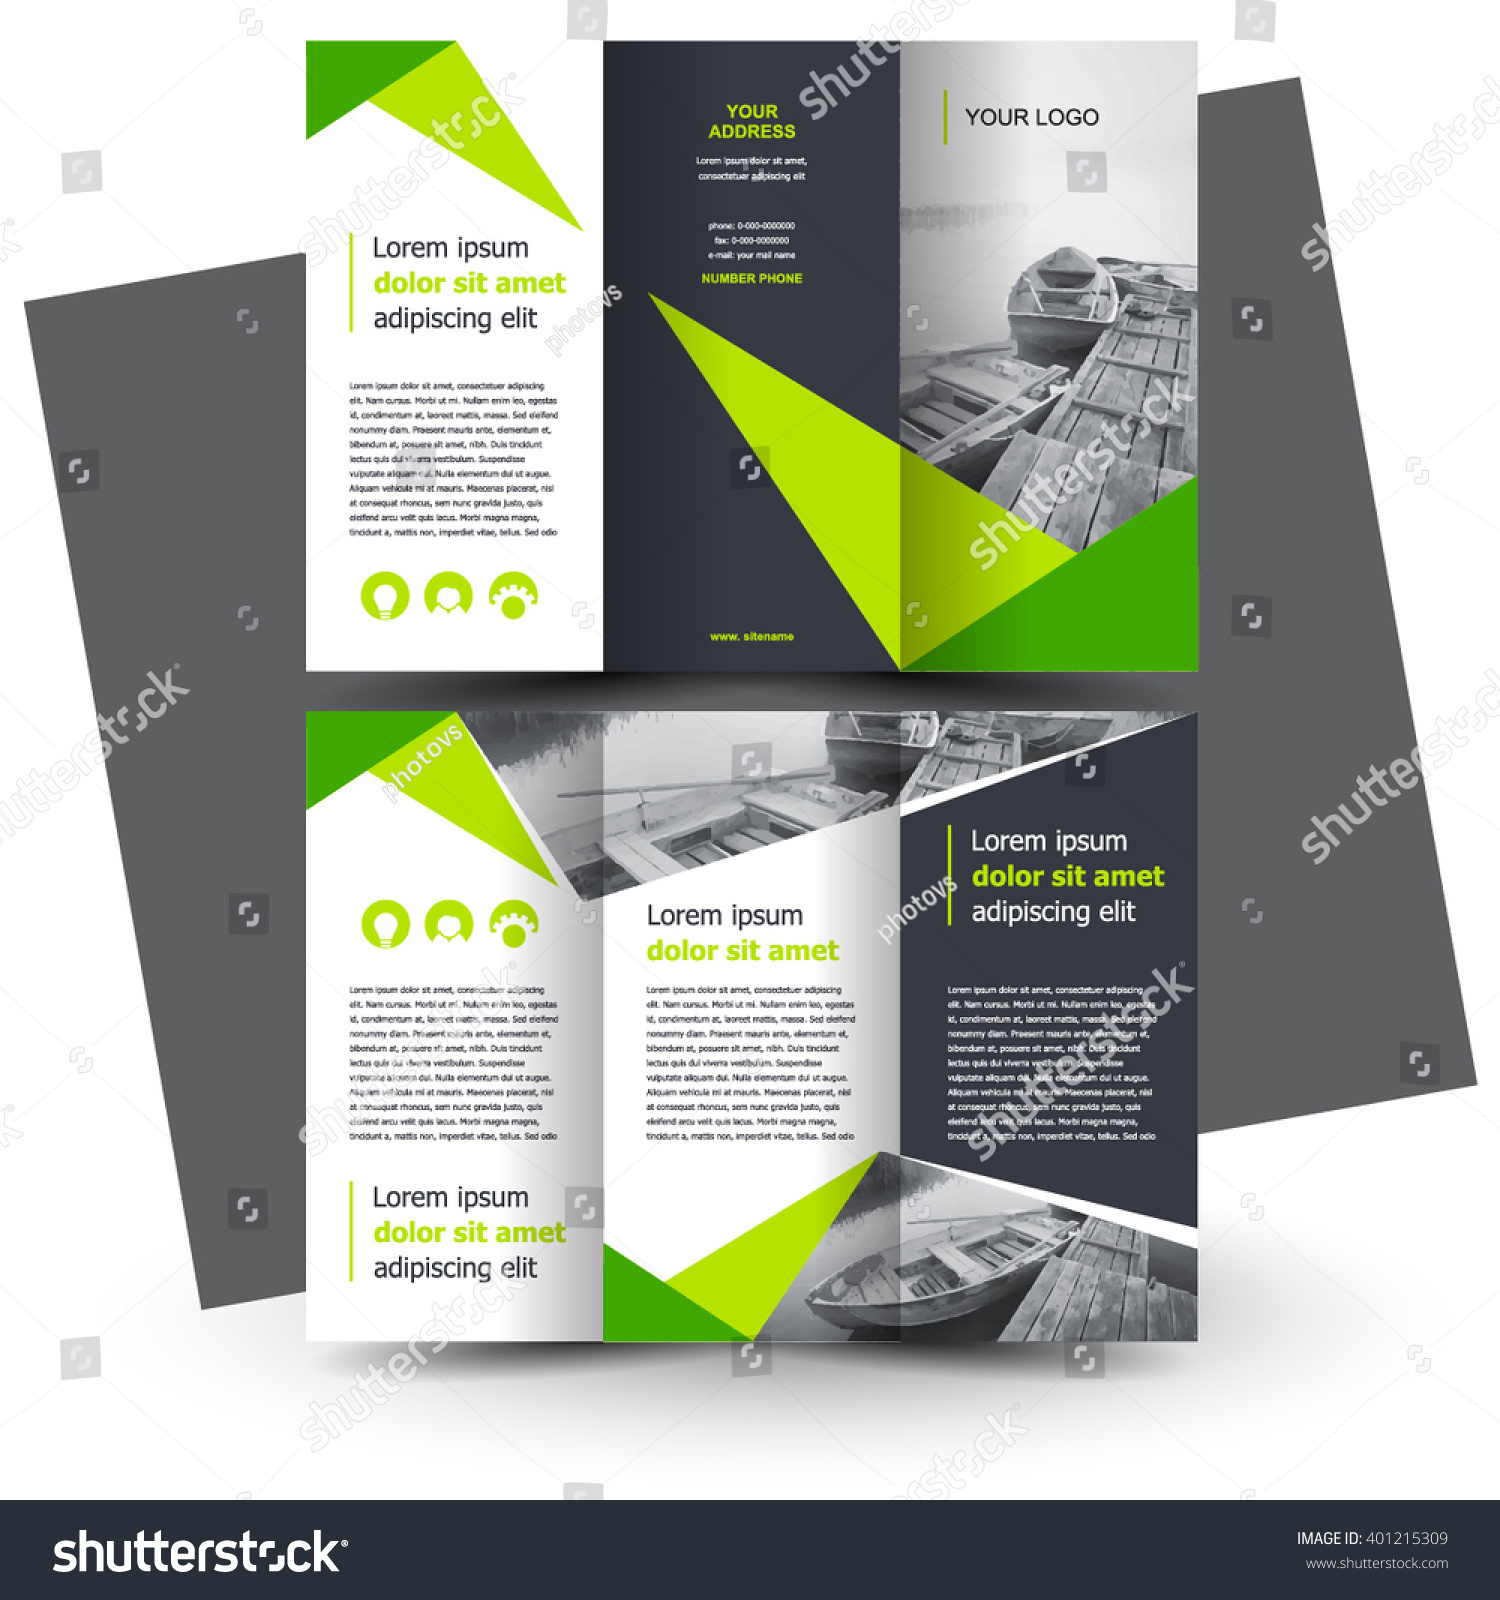 Brochure design brochure template creative trifold stock for Creative brochure templates free